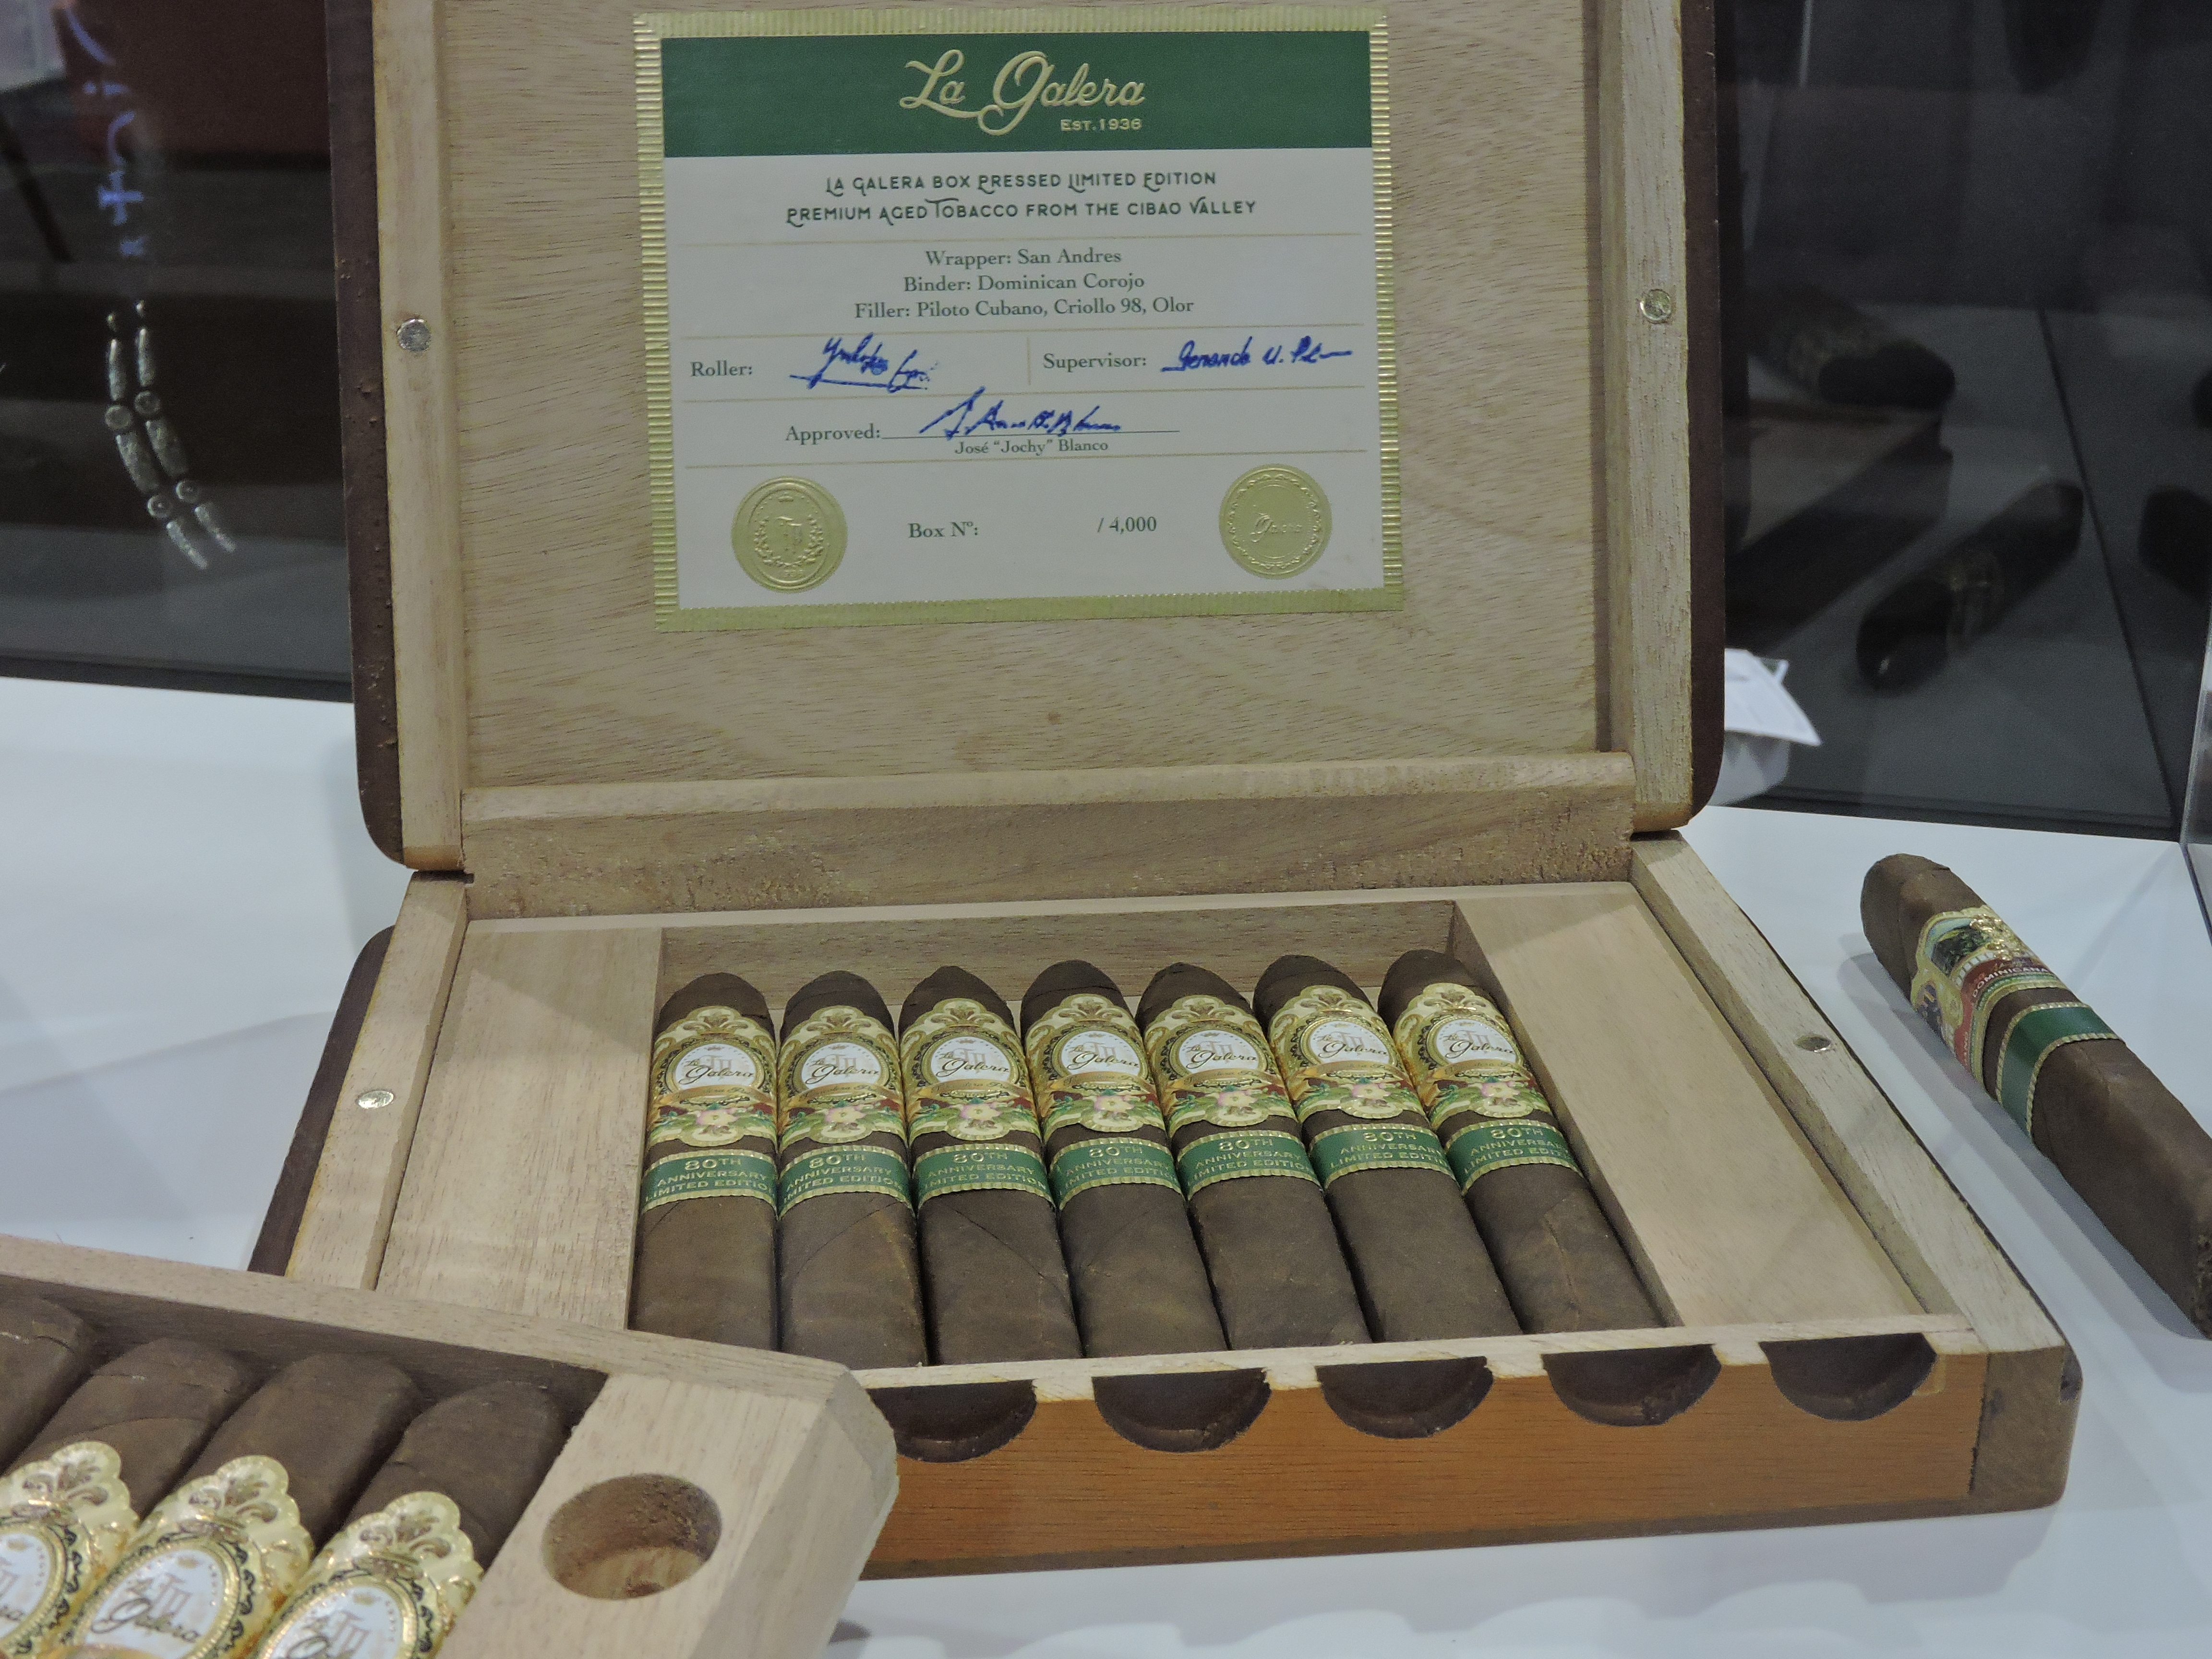 La_Galera_80th_Anniversary_Box_Pressed_Limited_Edition_Cortador